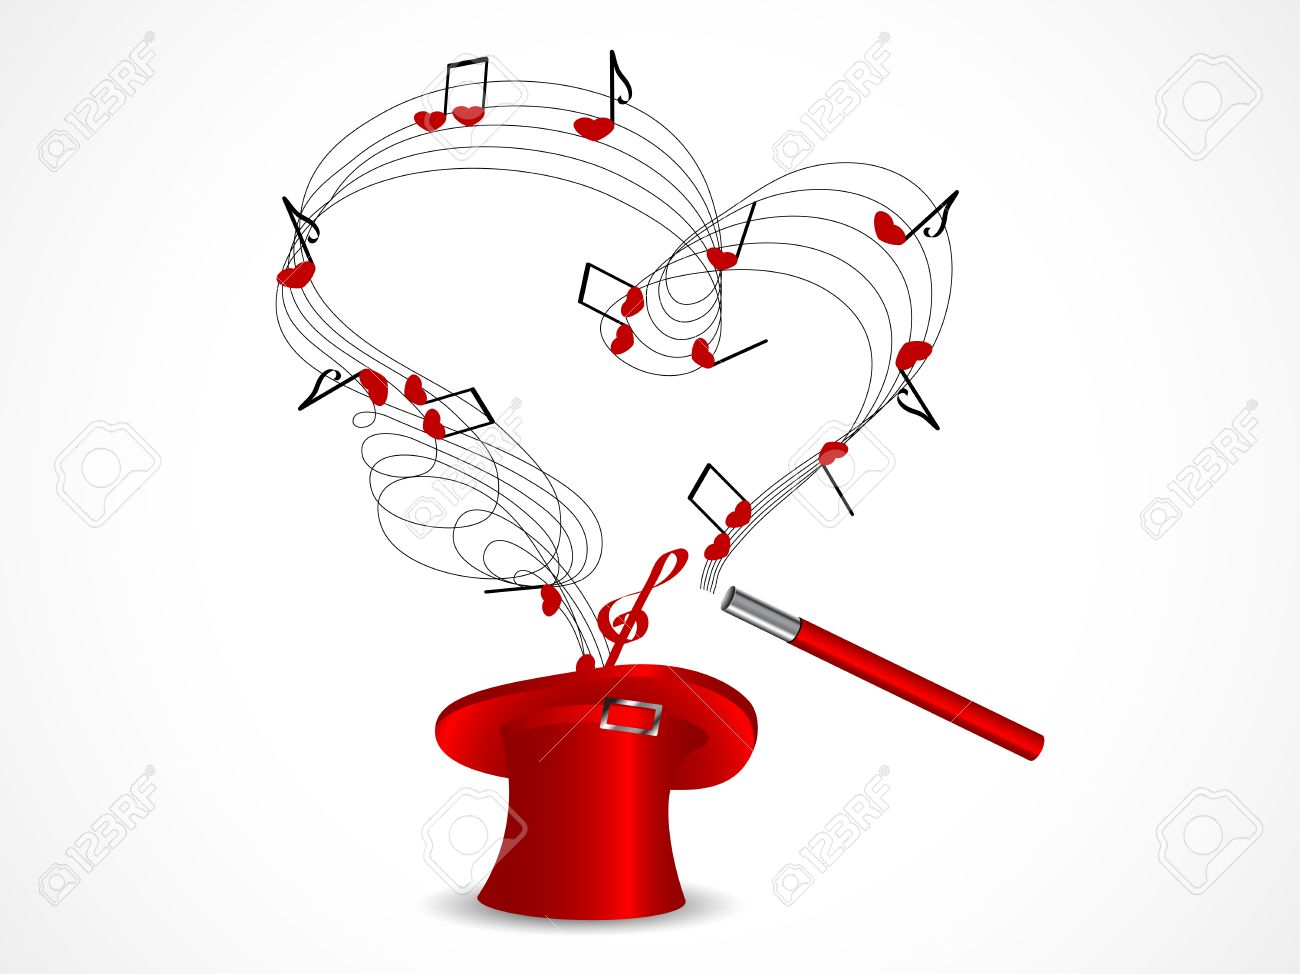 Clip Art Line Of Hearts : Red magic cylinder with notes and hearts royalty free cliparts